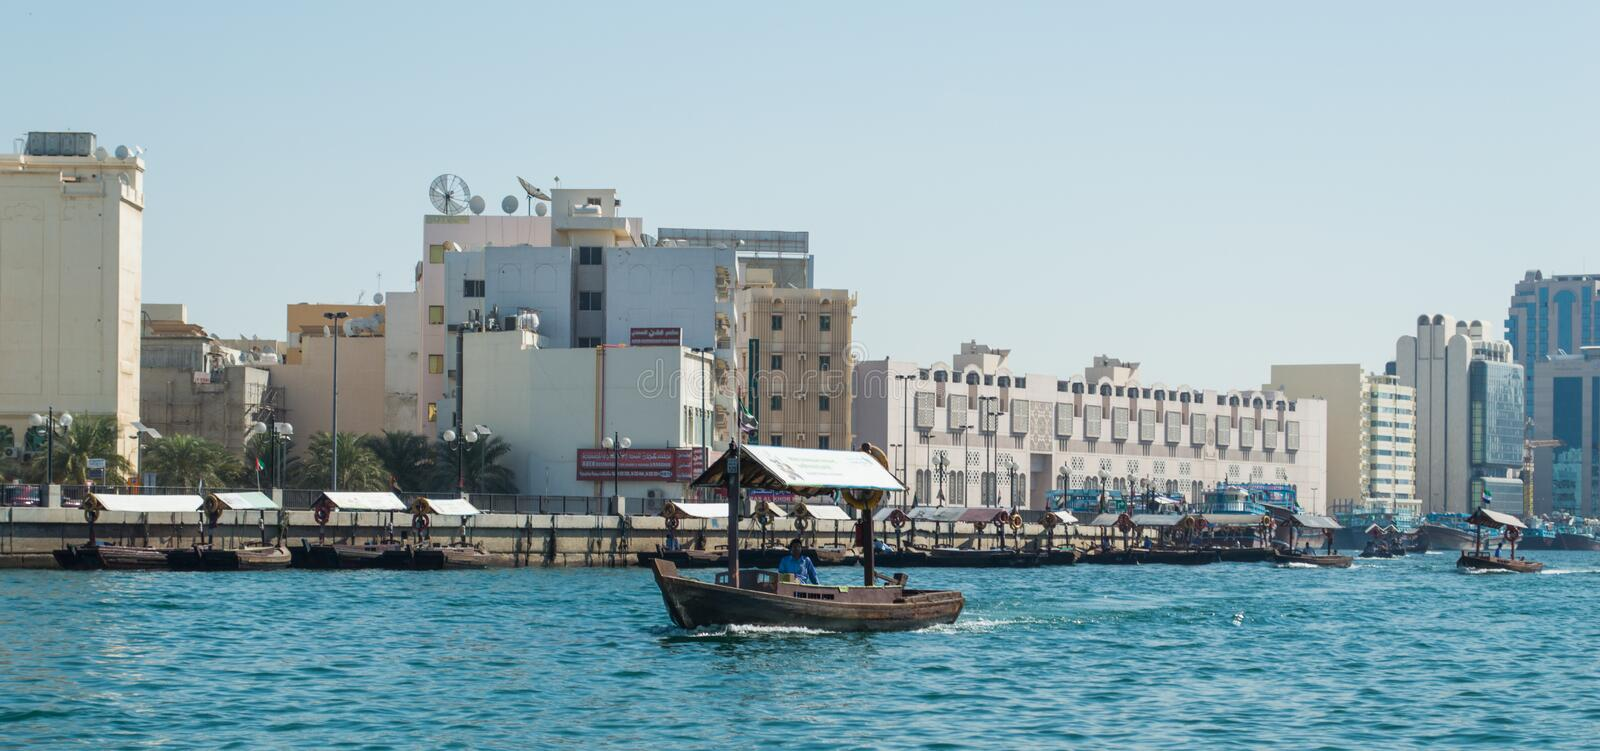 Ferry dhow in Dubai royalty free stock images